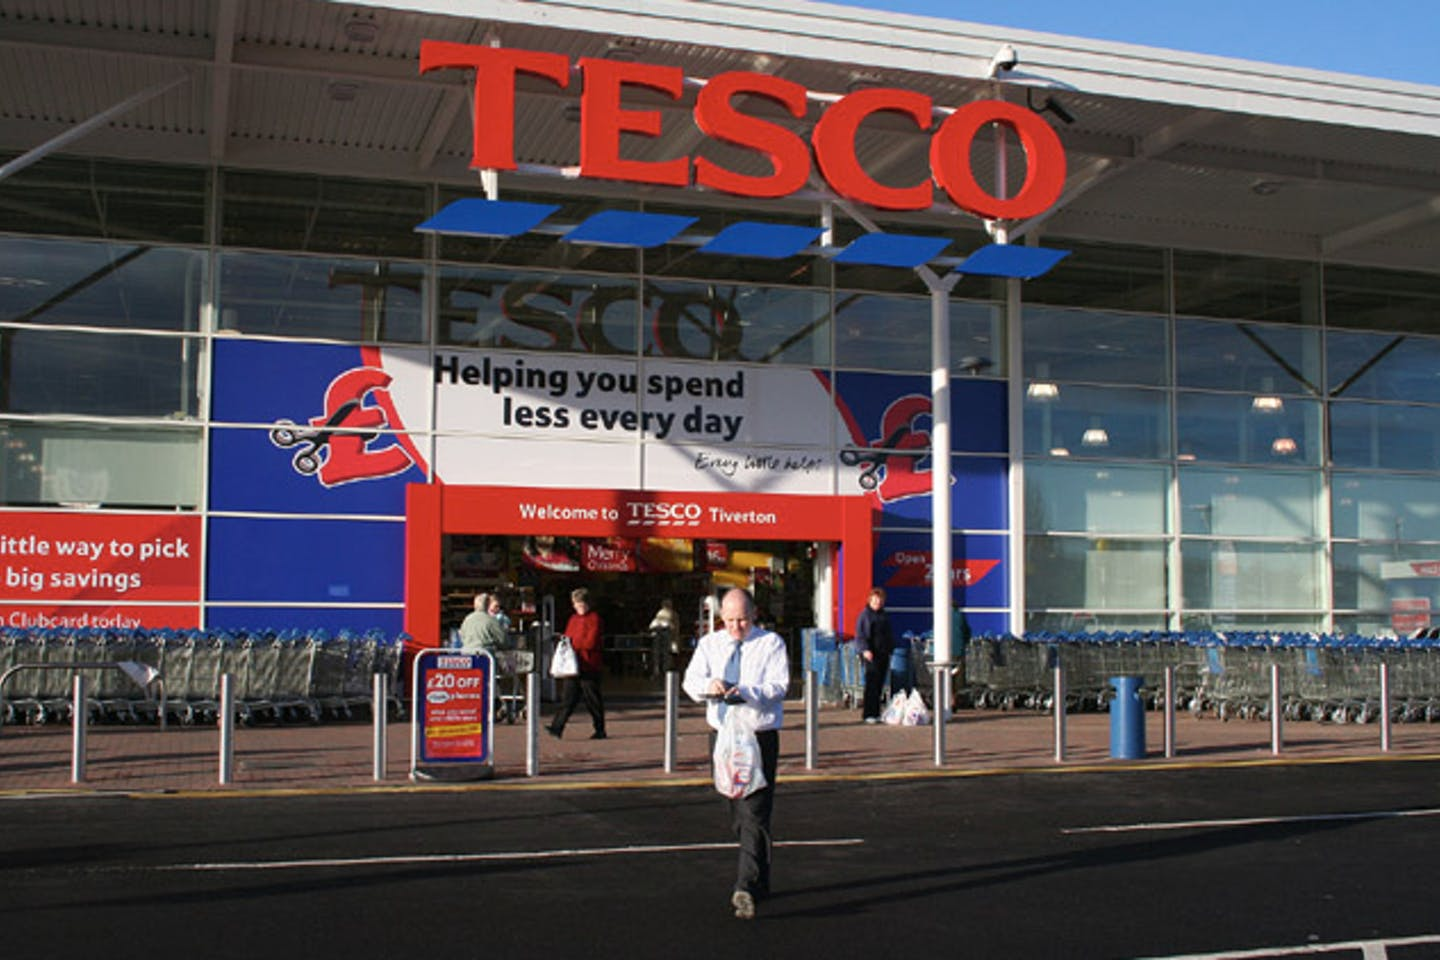 tesco supermarket2